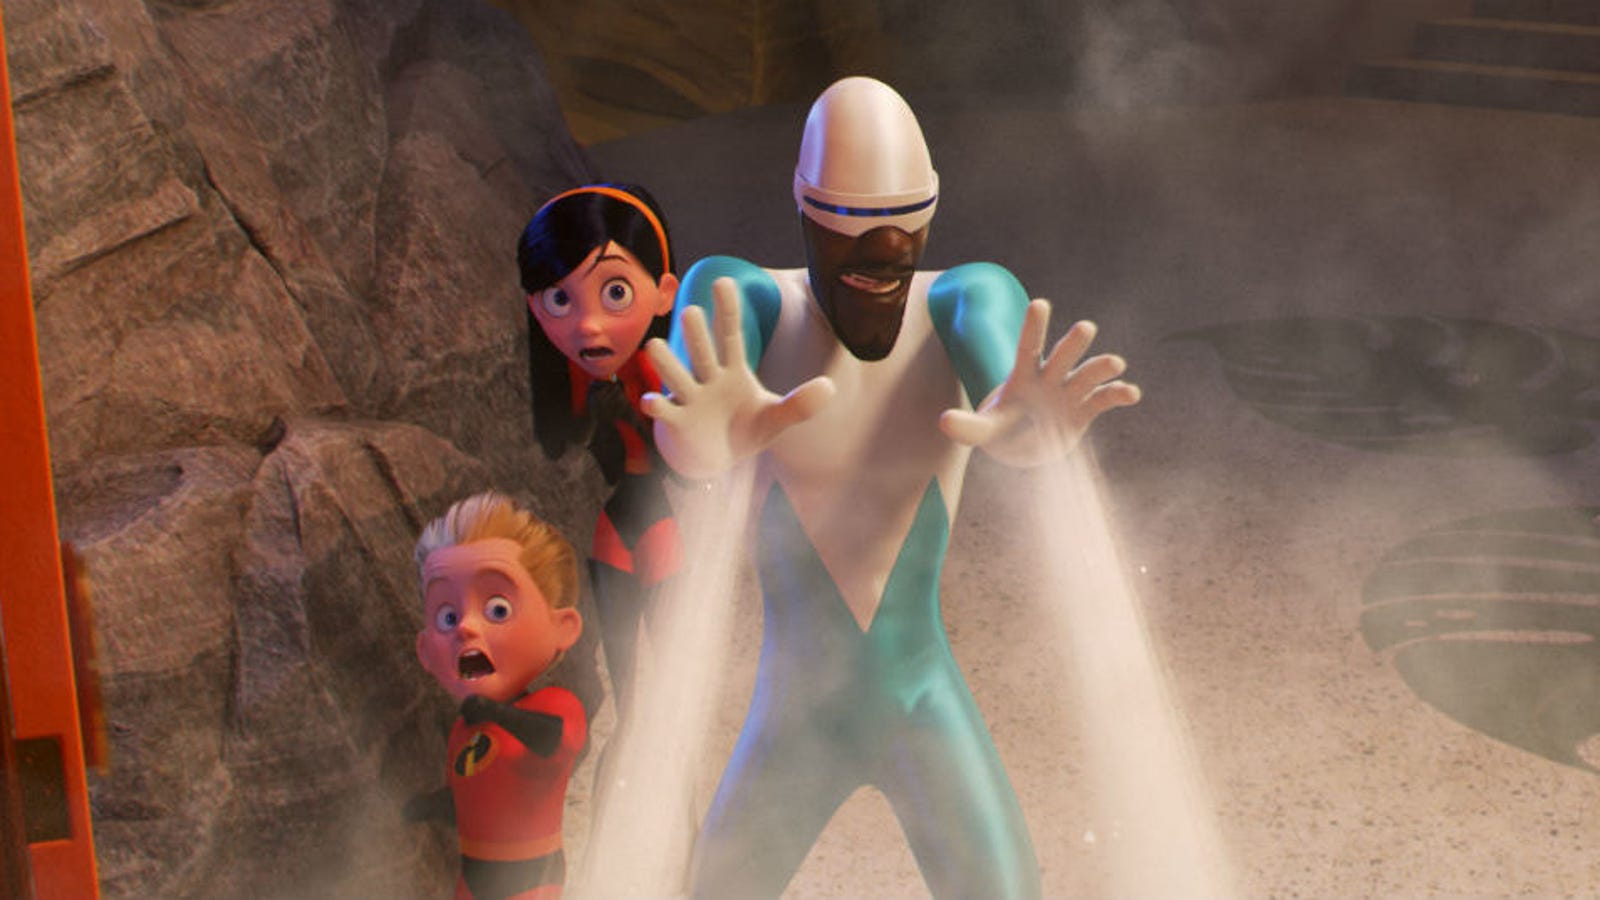 See Frozone's Wife Honey in This Exclusive Incredibles 2 Deleted Scene